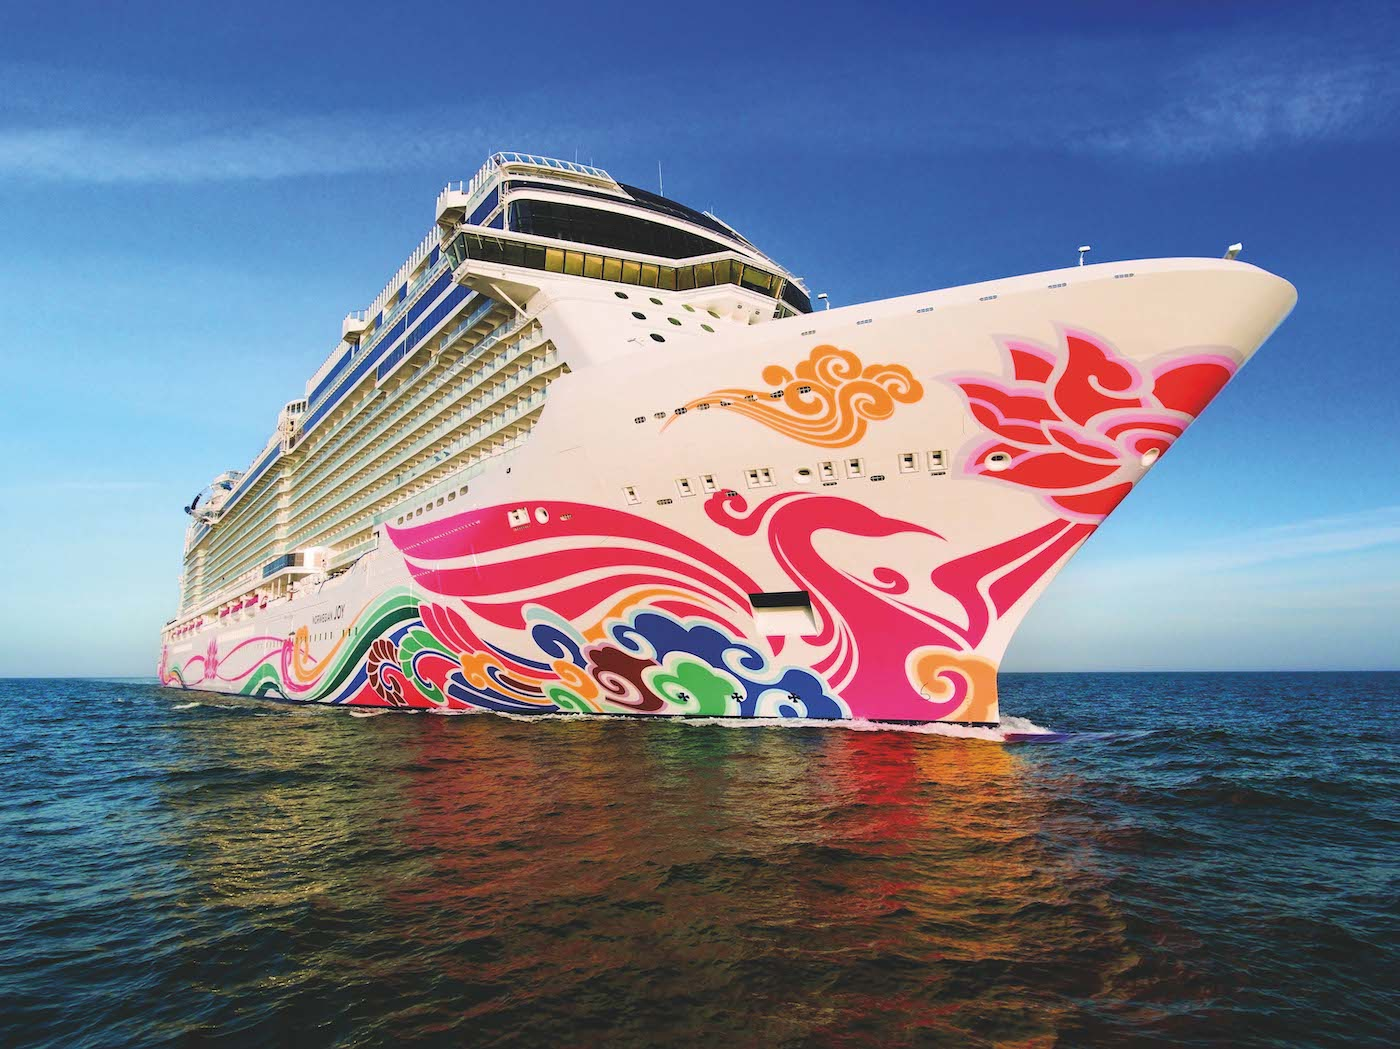 Norwegian Joy shows off colourful artwork on its hull